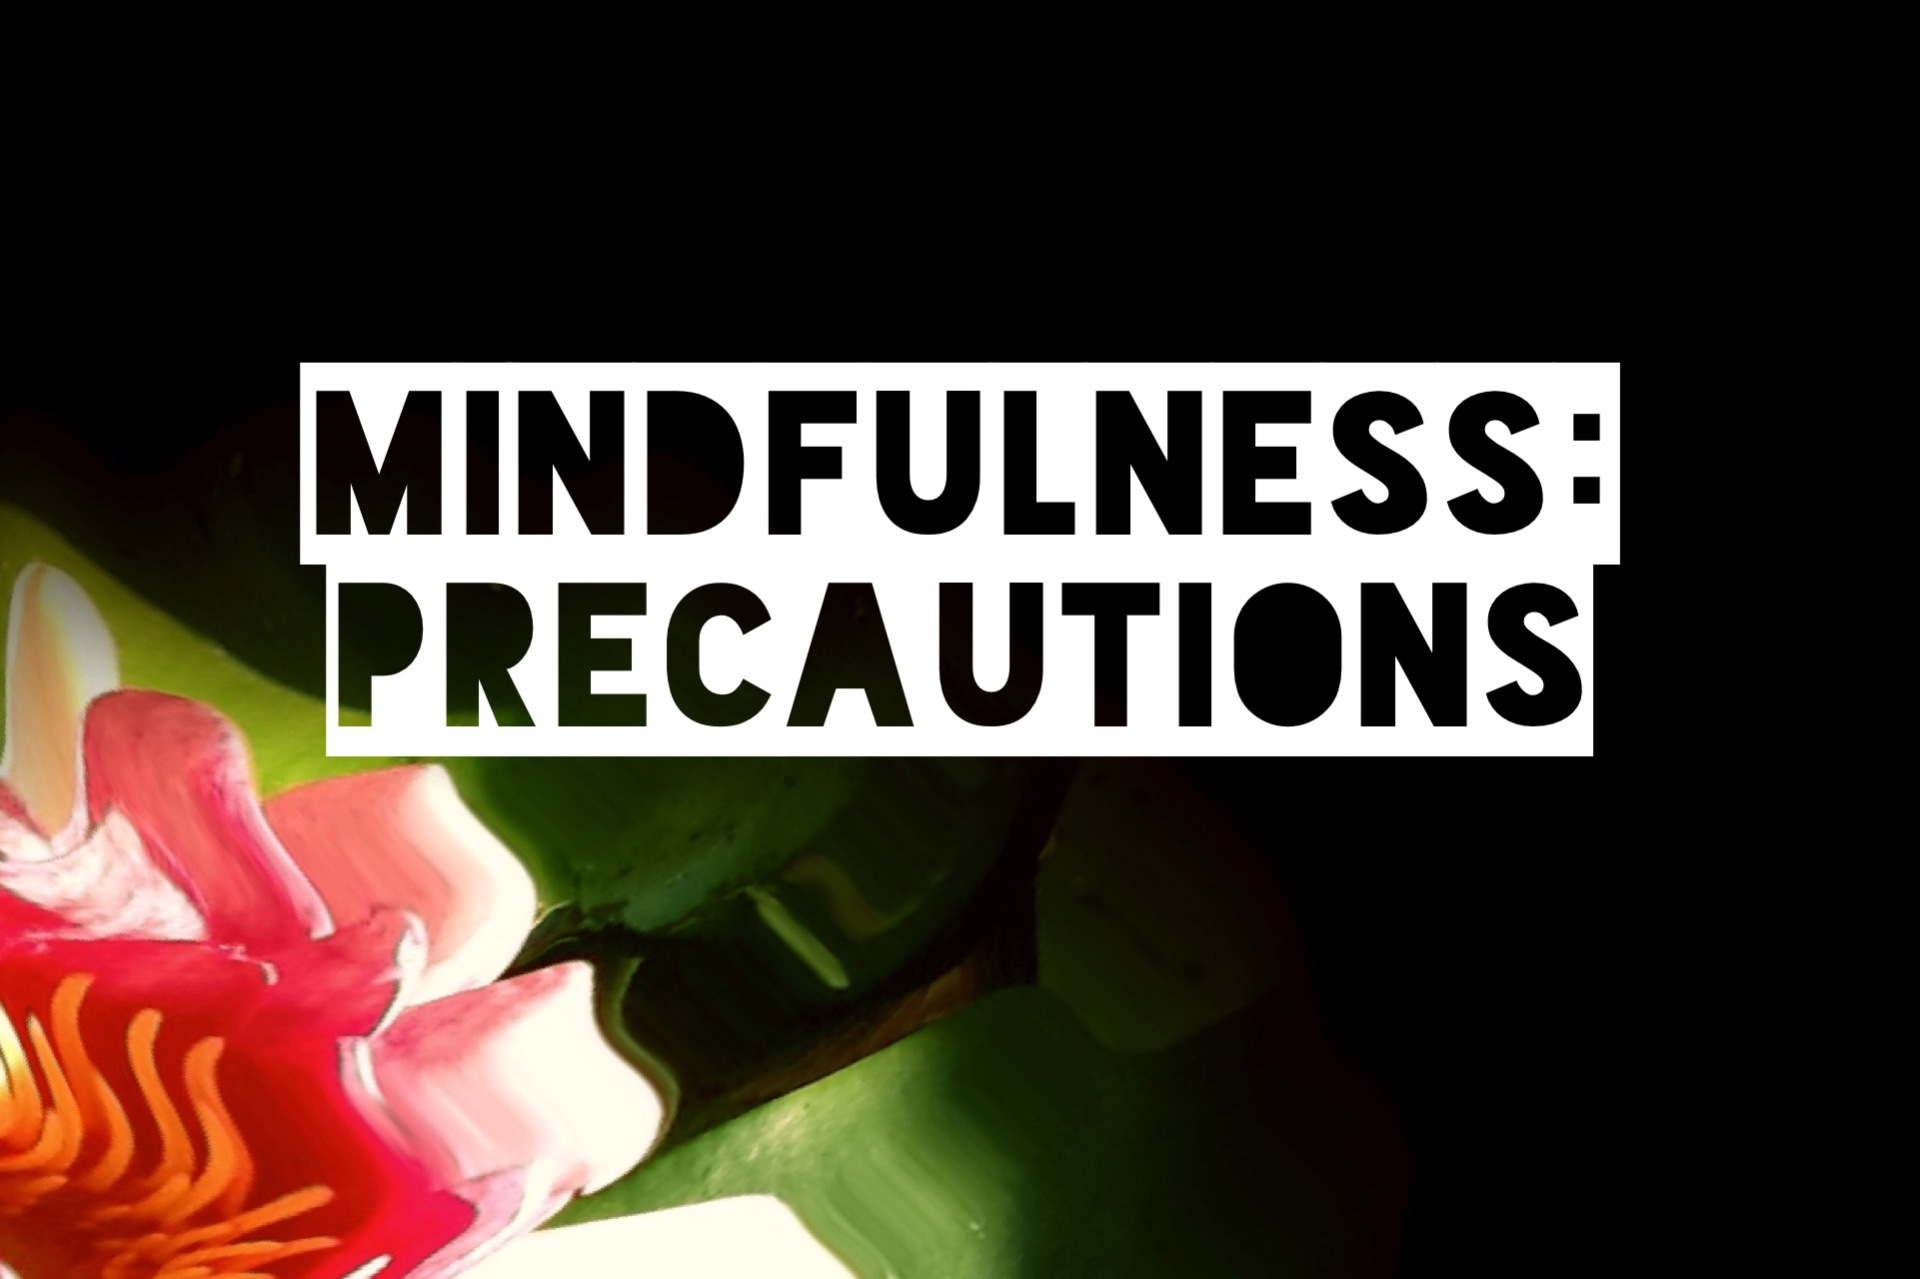 Mindfulness: precautionary advice